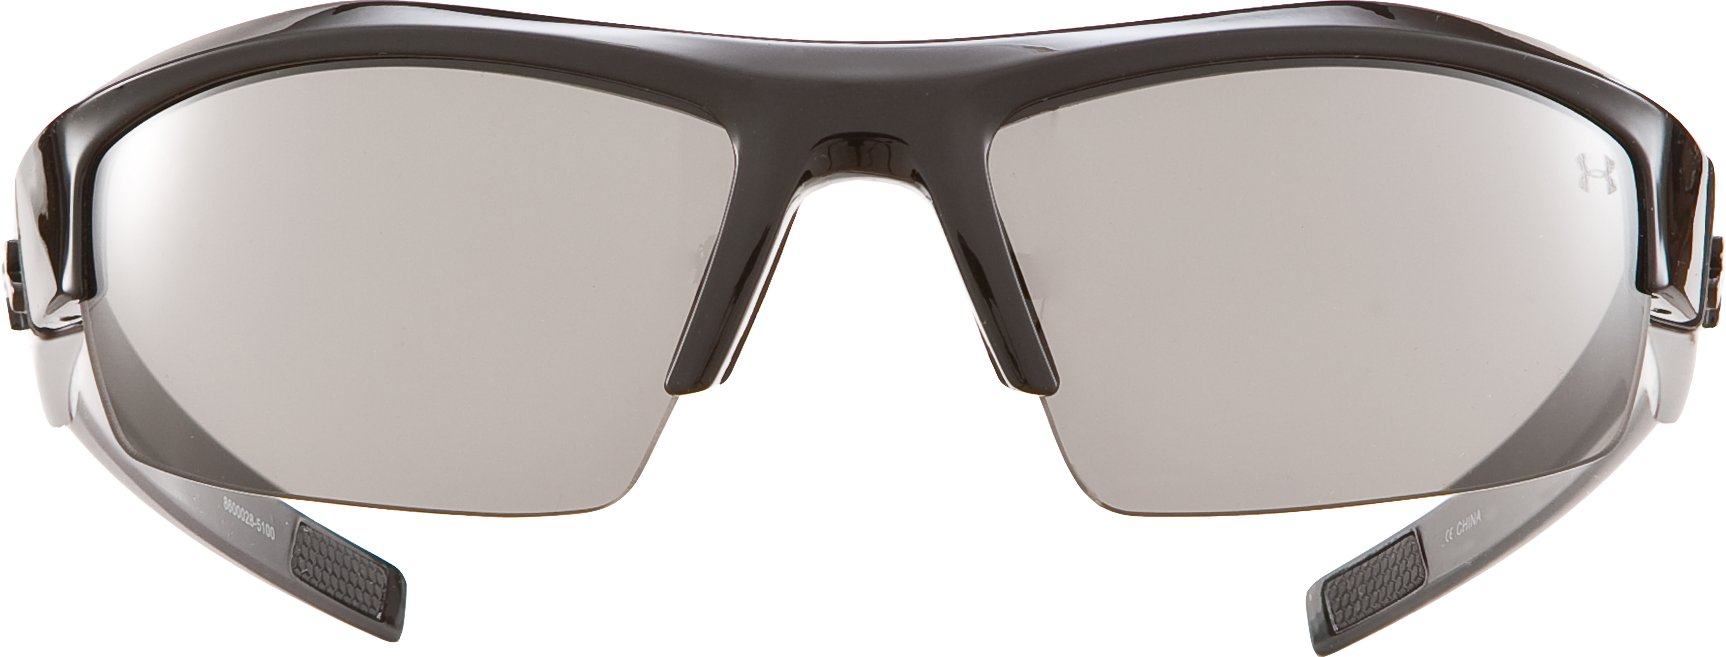 UA Igniter Sunglasses, Shiny Black,